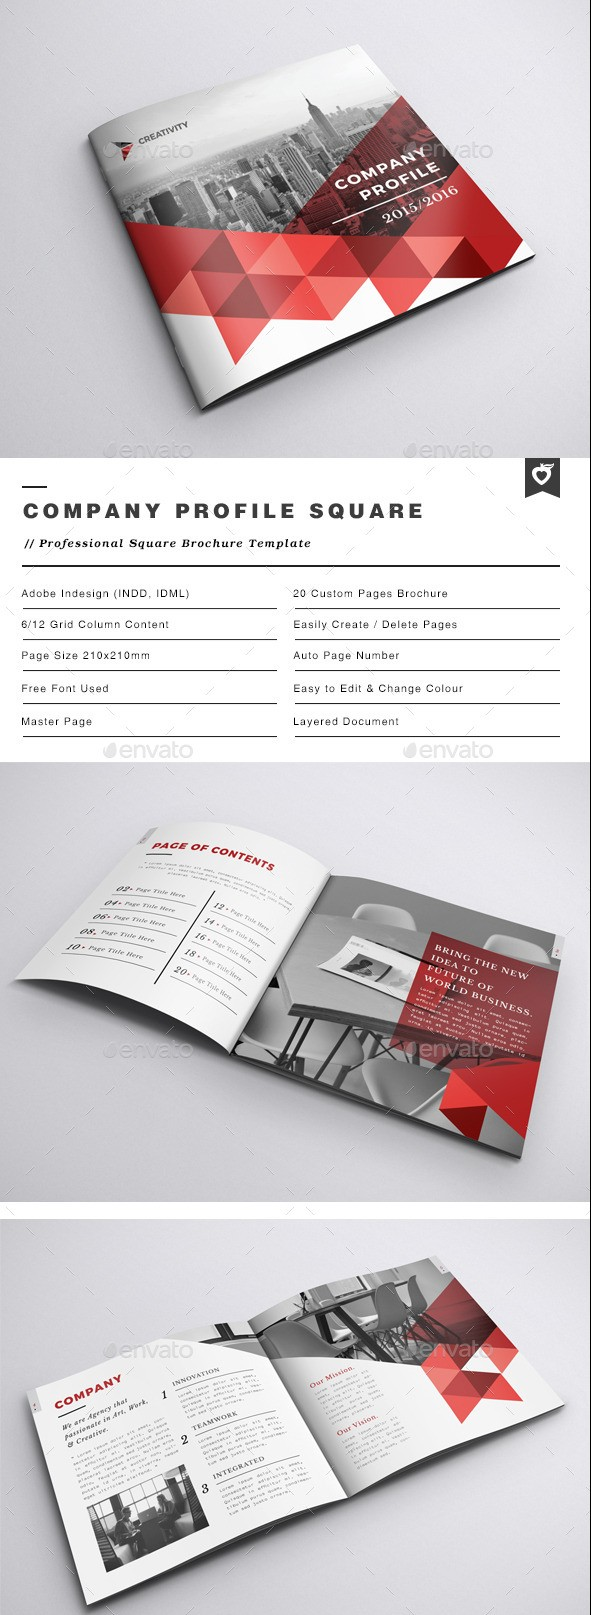 65 print ready brochure templates free psd indesign ai for Adobe indesign brochure template